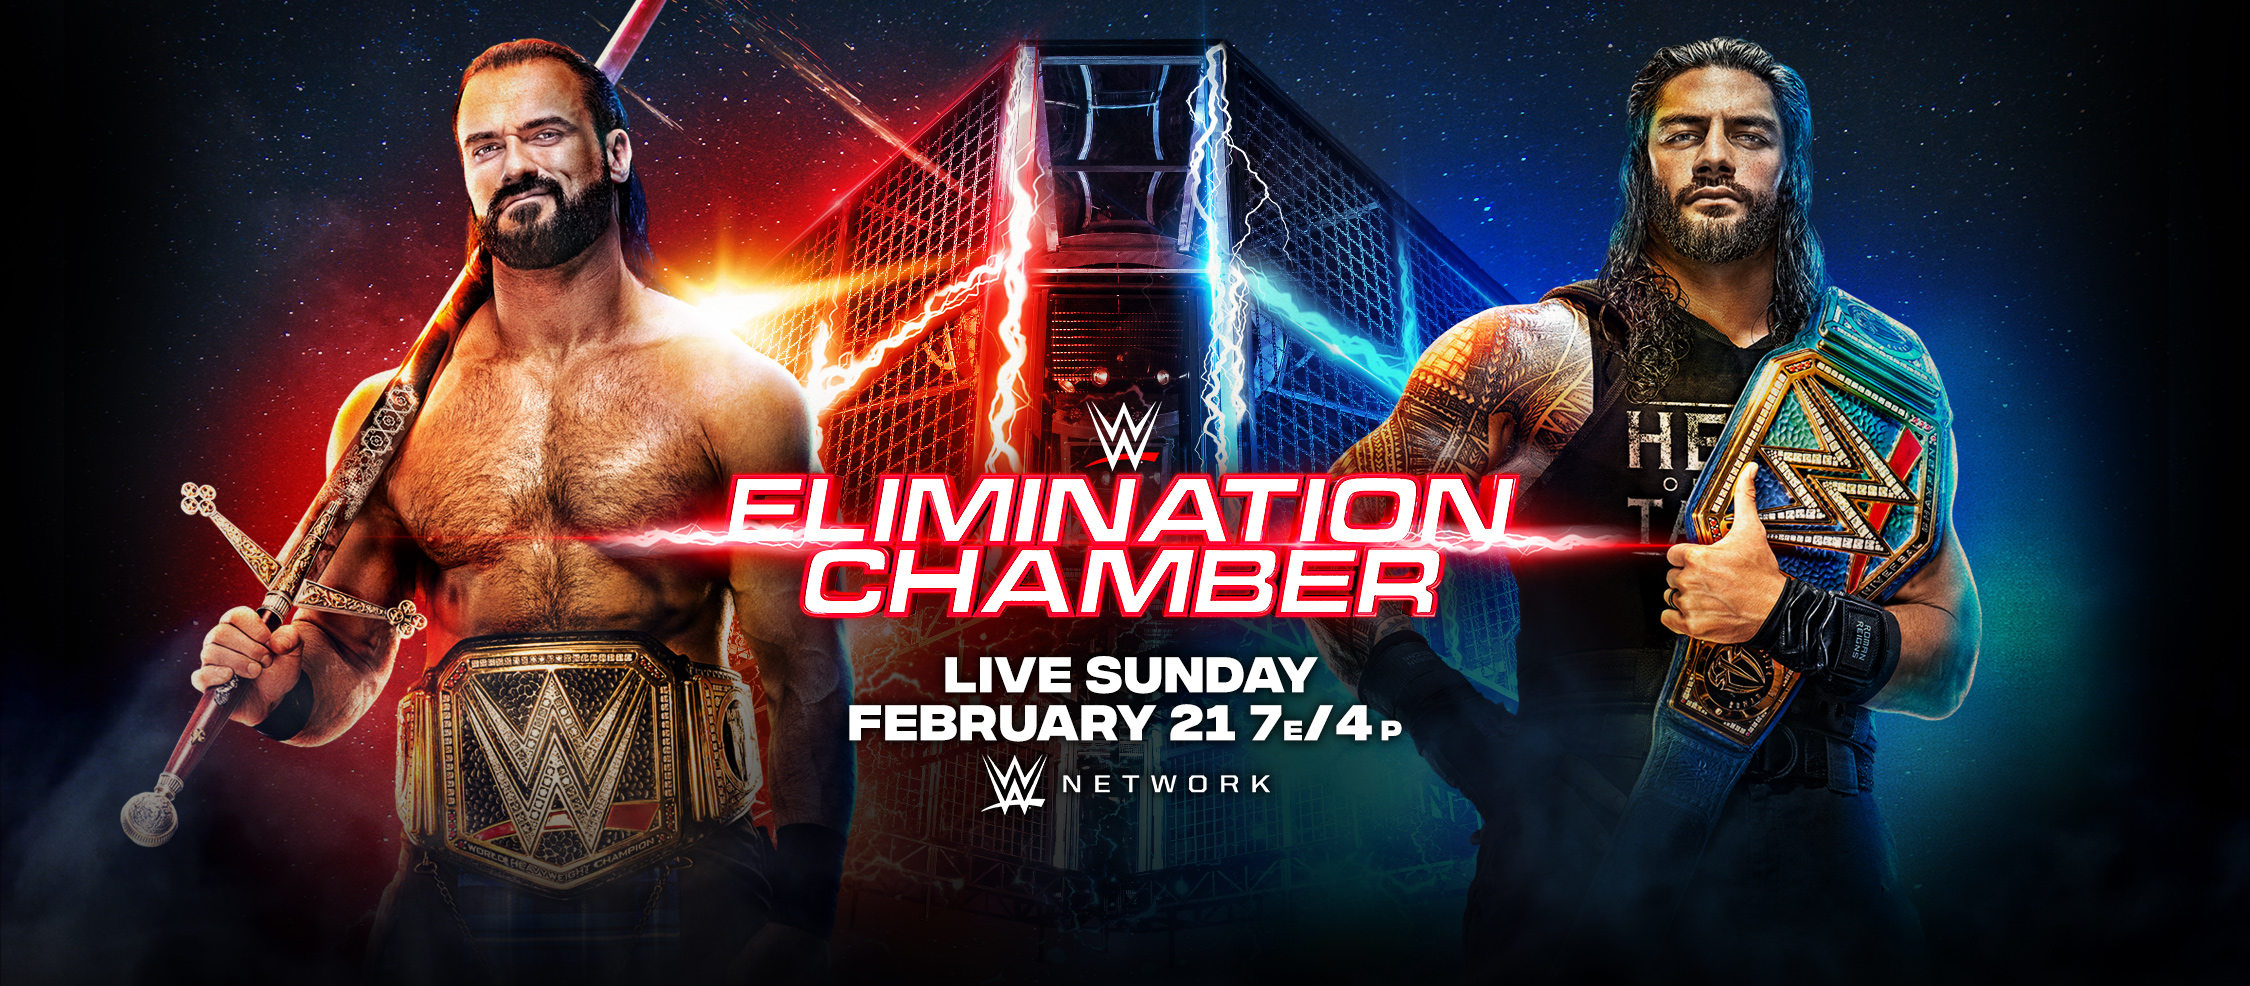 WWE ELIMINATION CHAMBER 2021 PREVIEW AND PREDICTIONS